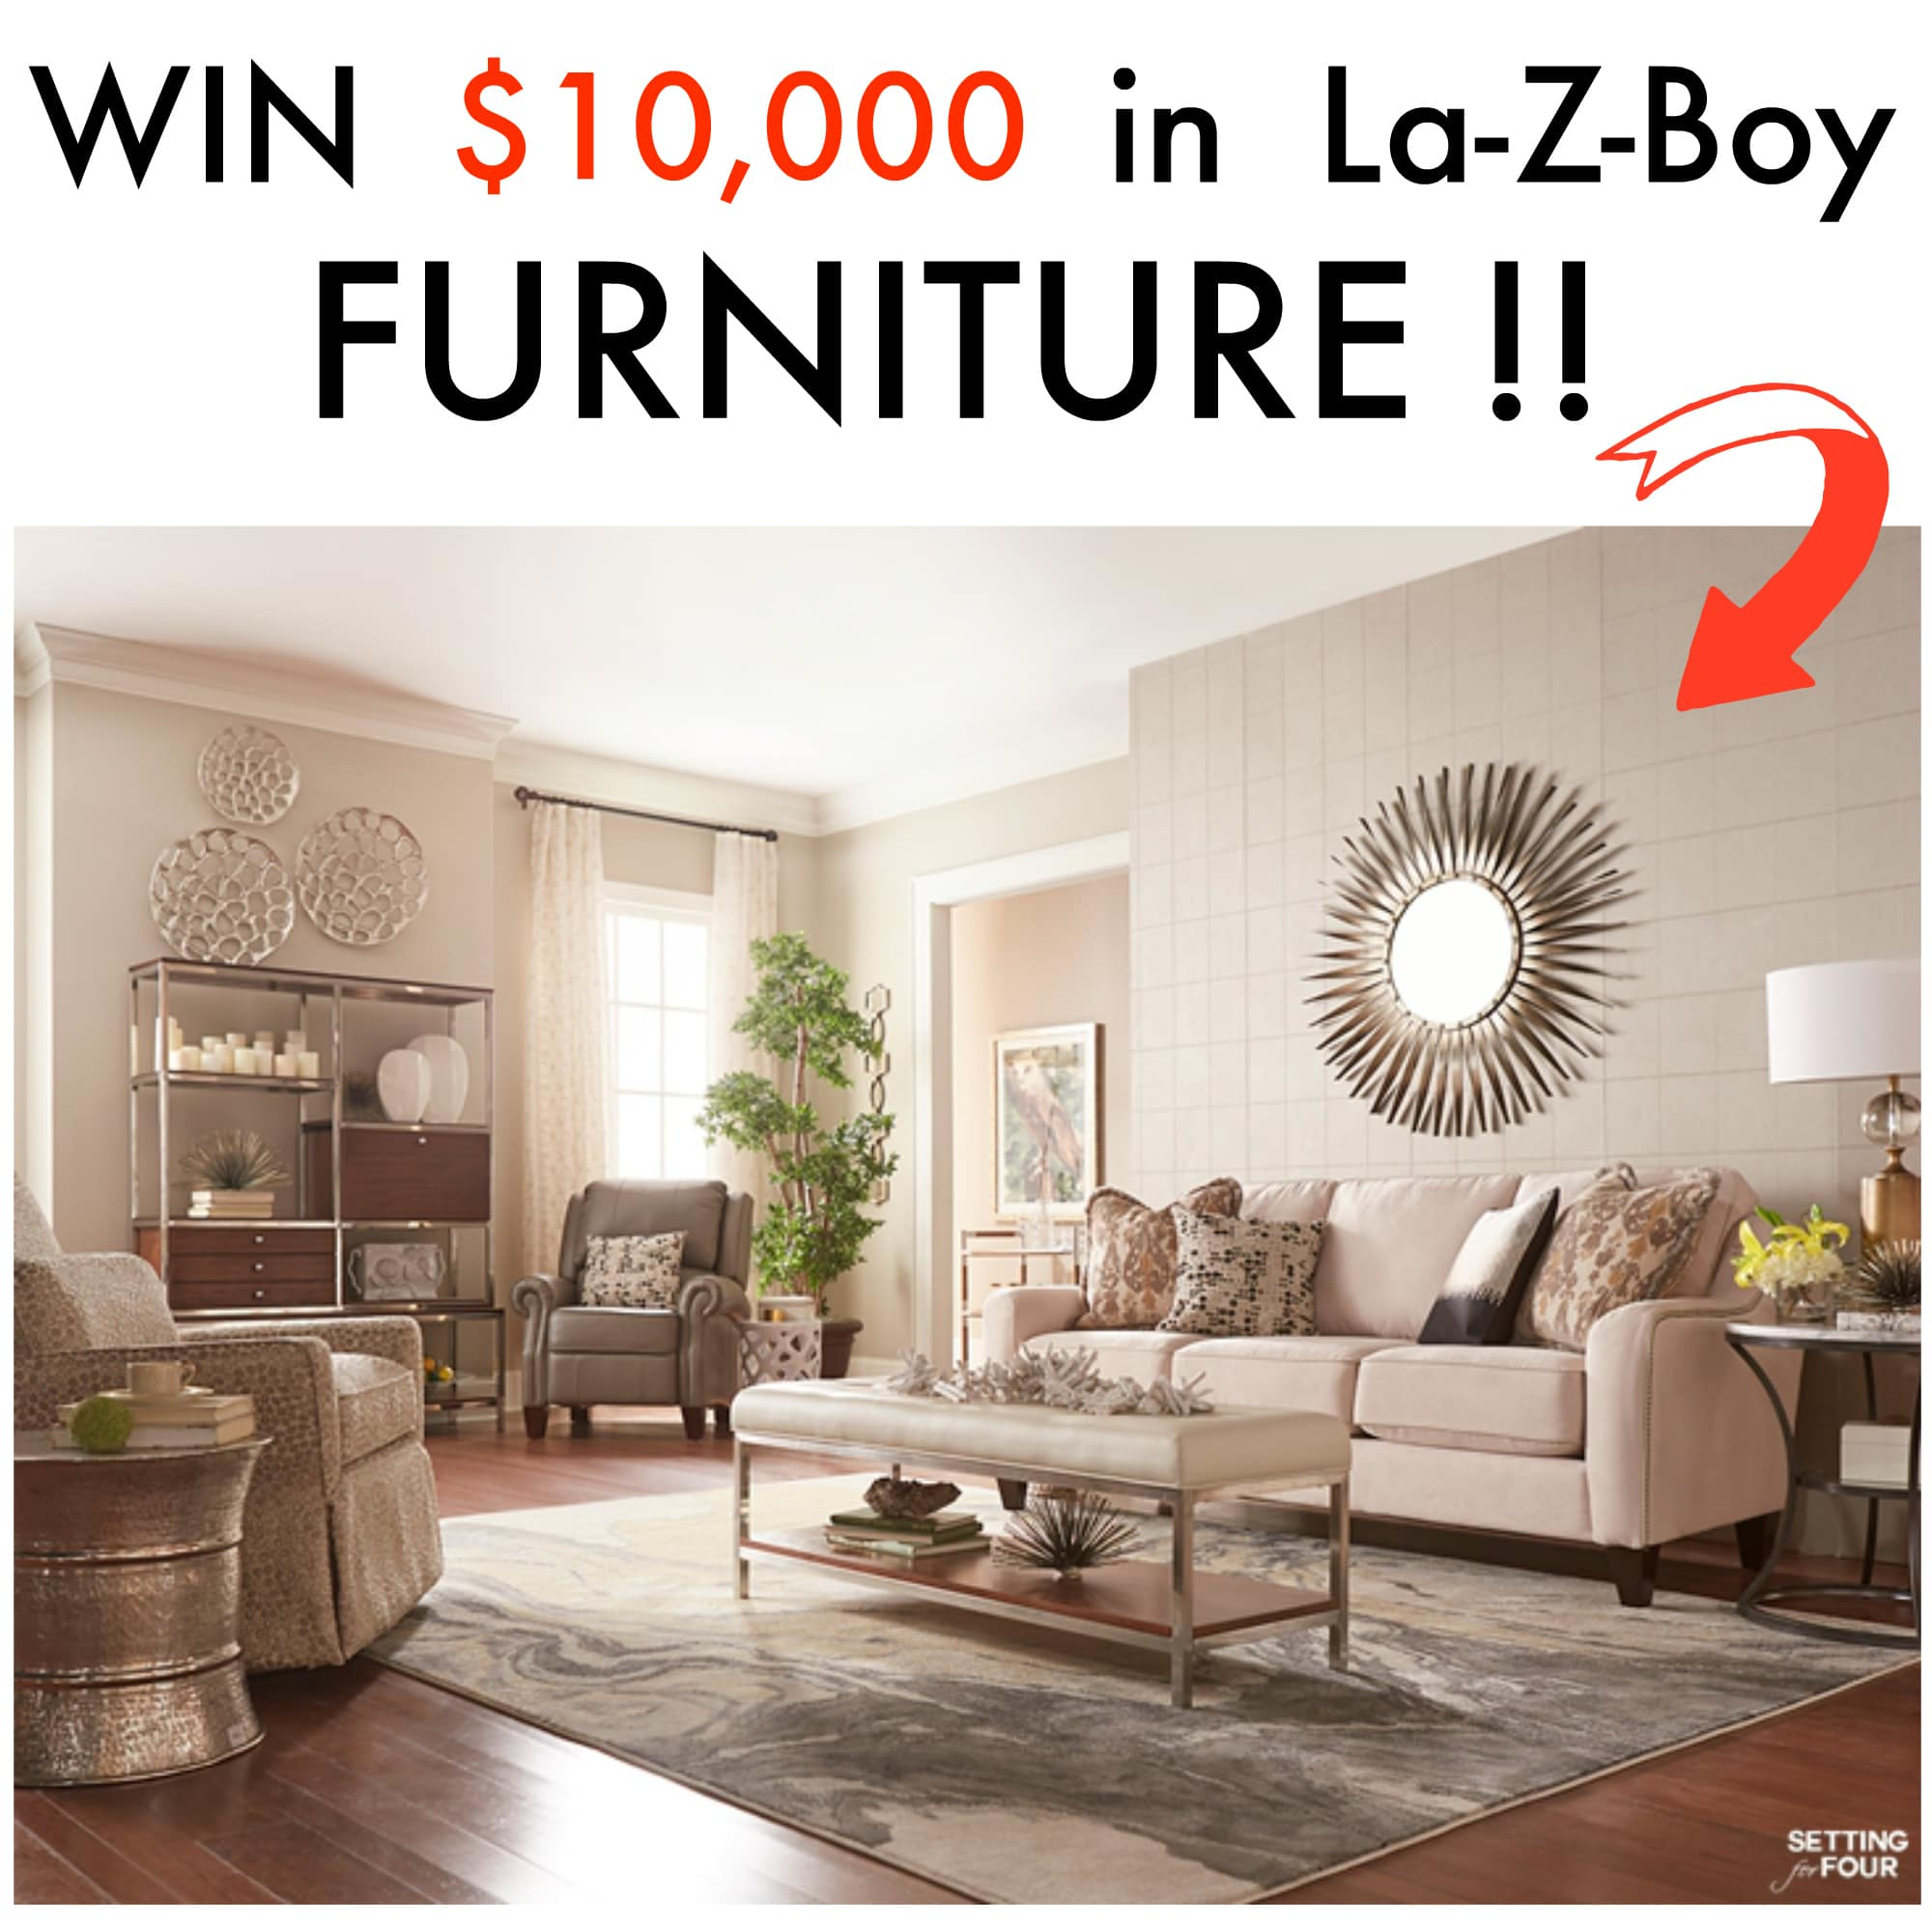 Living Room Design Ideas And $10,000 Giveaway - Setting for Four